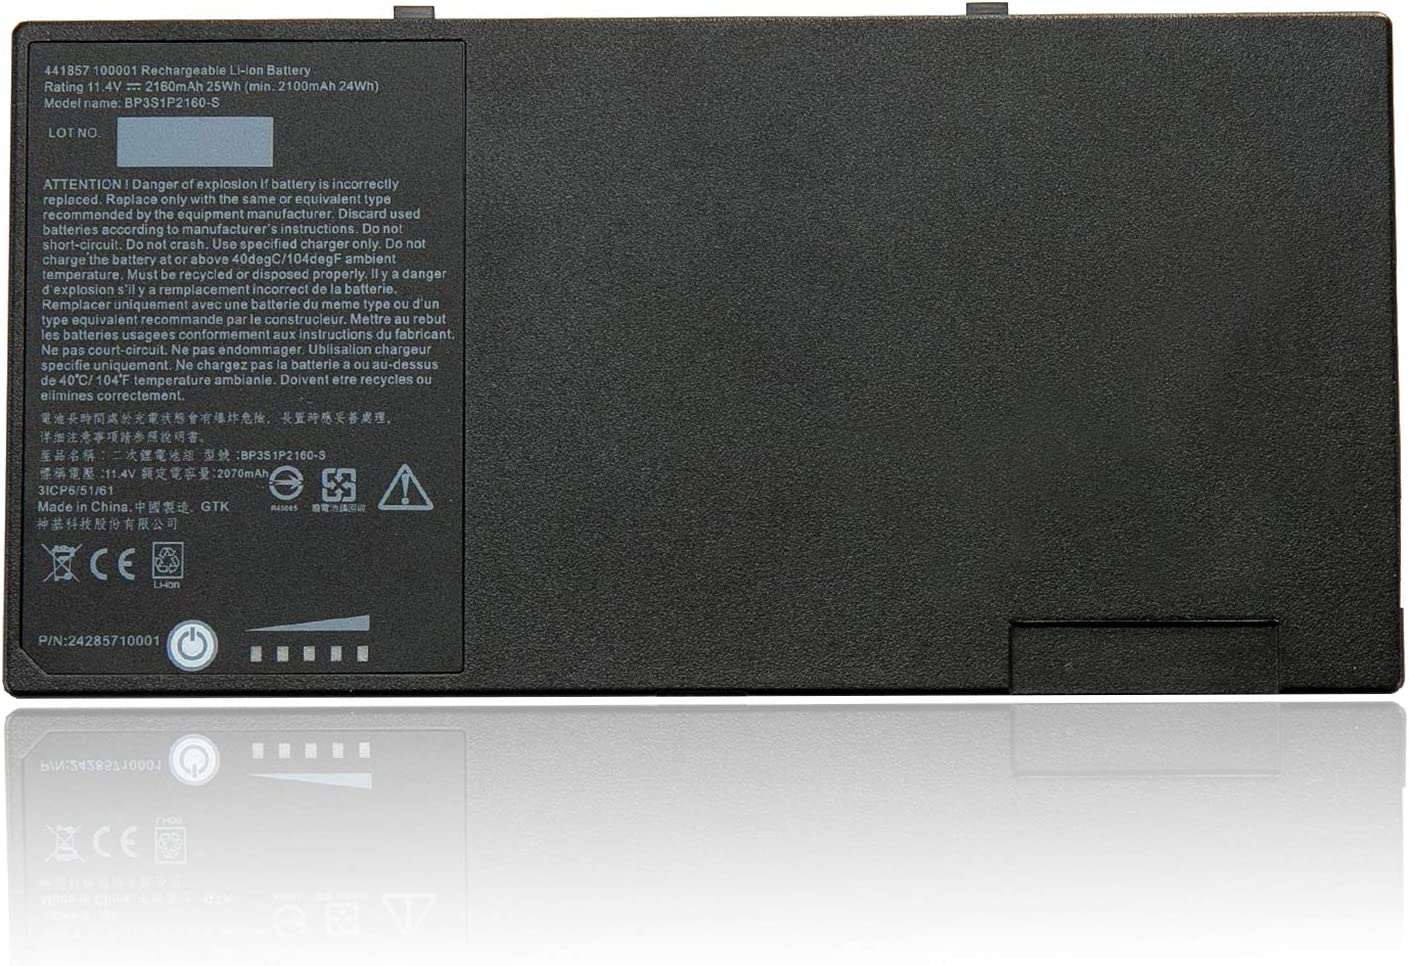 TanDirect BP3S1P2160 F110 25Wh Replacement Laptop Battery Compatible with Getac F110 Tablet BP3S1P2160-S 441857100001 3ICP6/51/61 (11.4V 2160mAh)